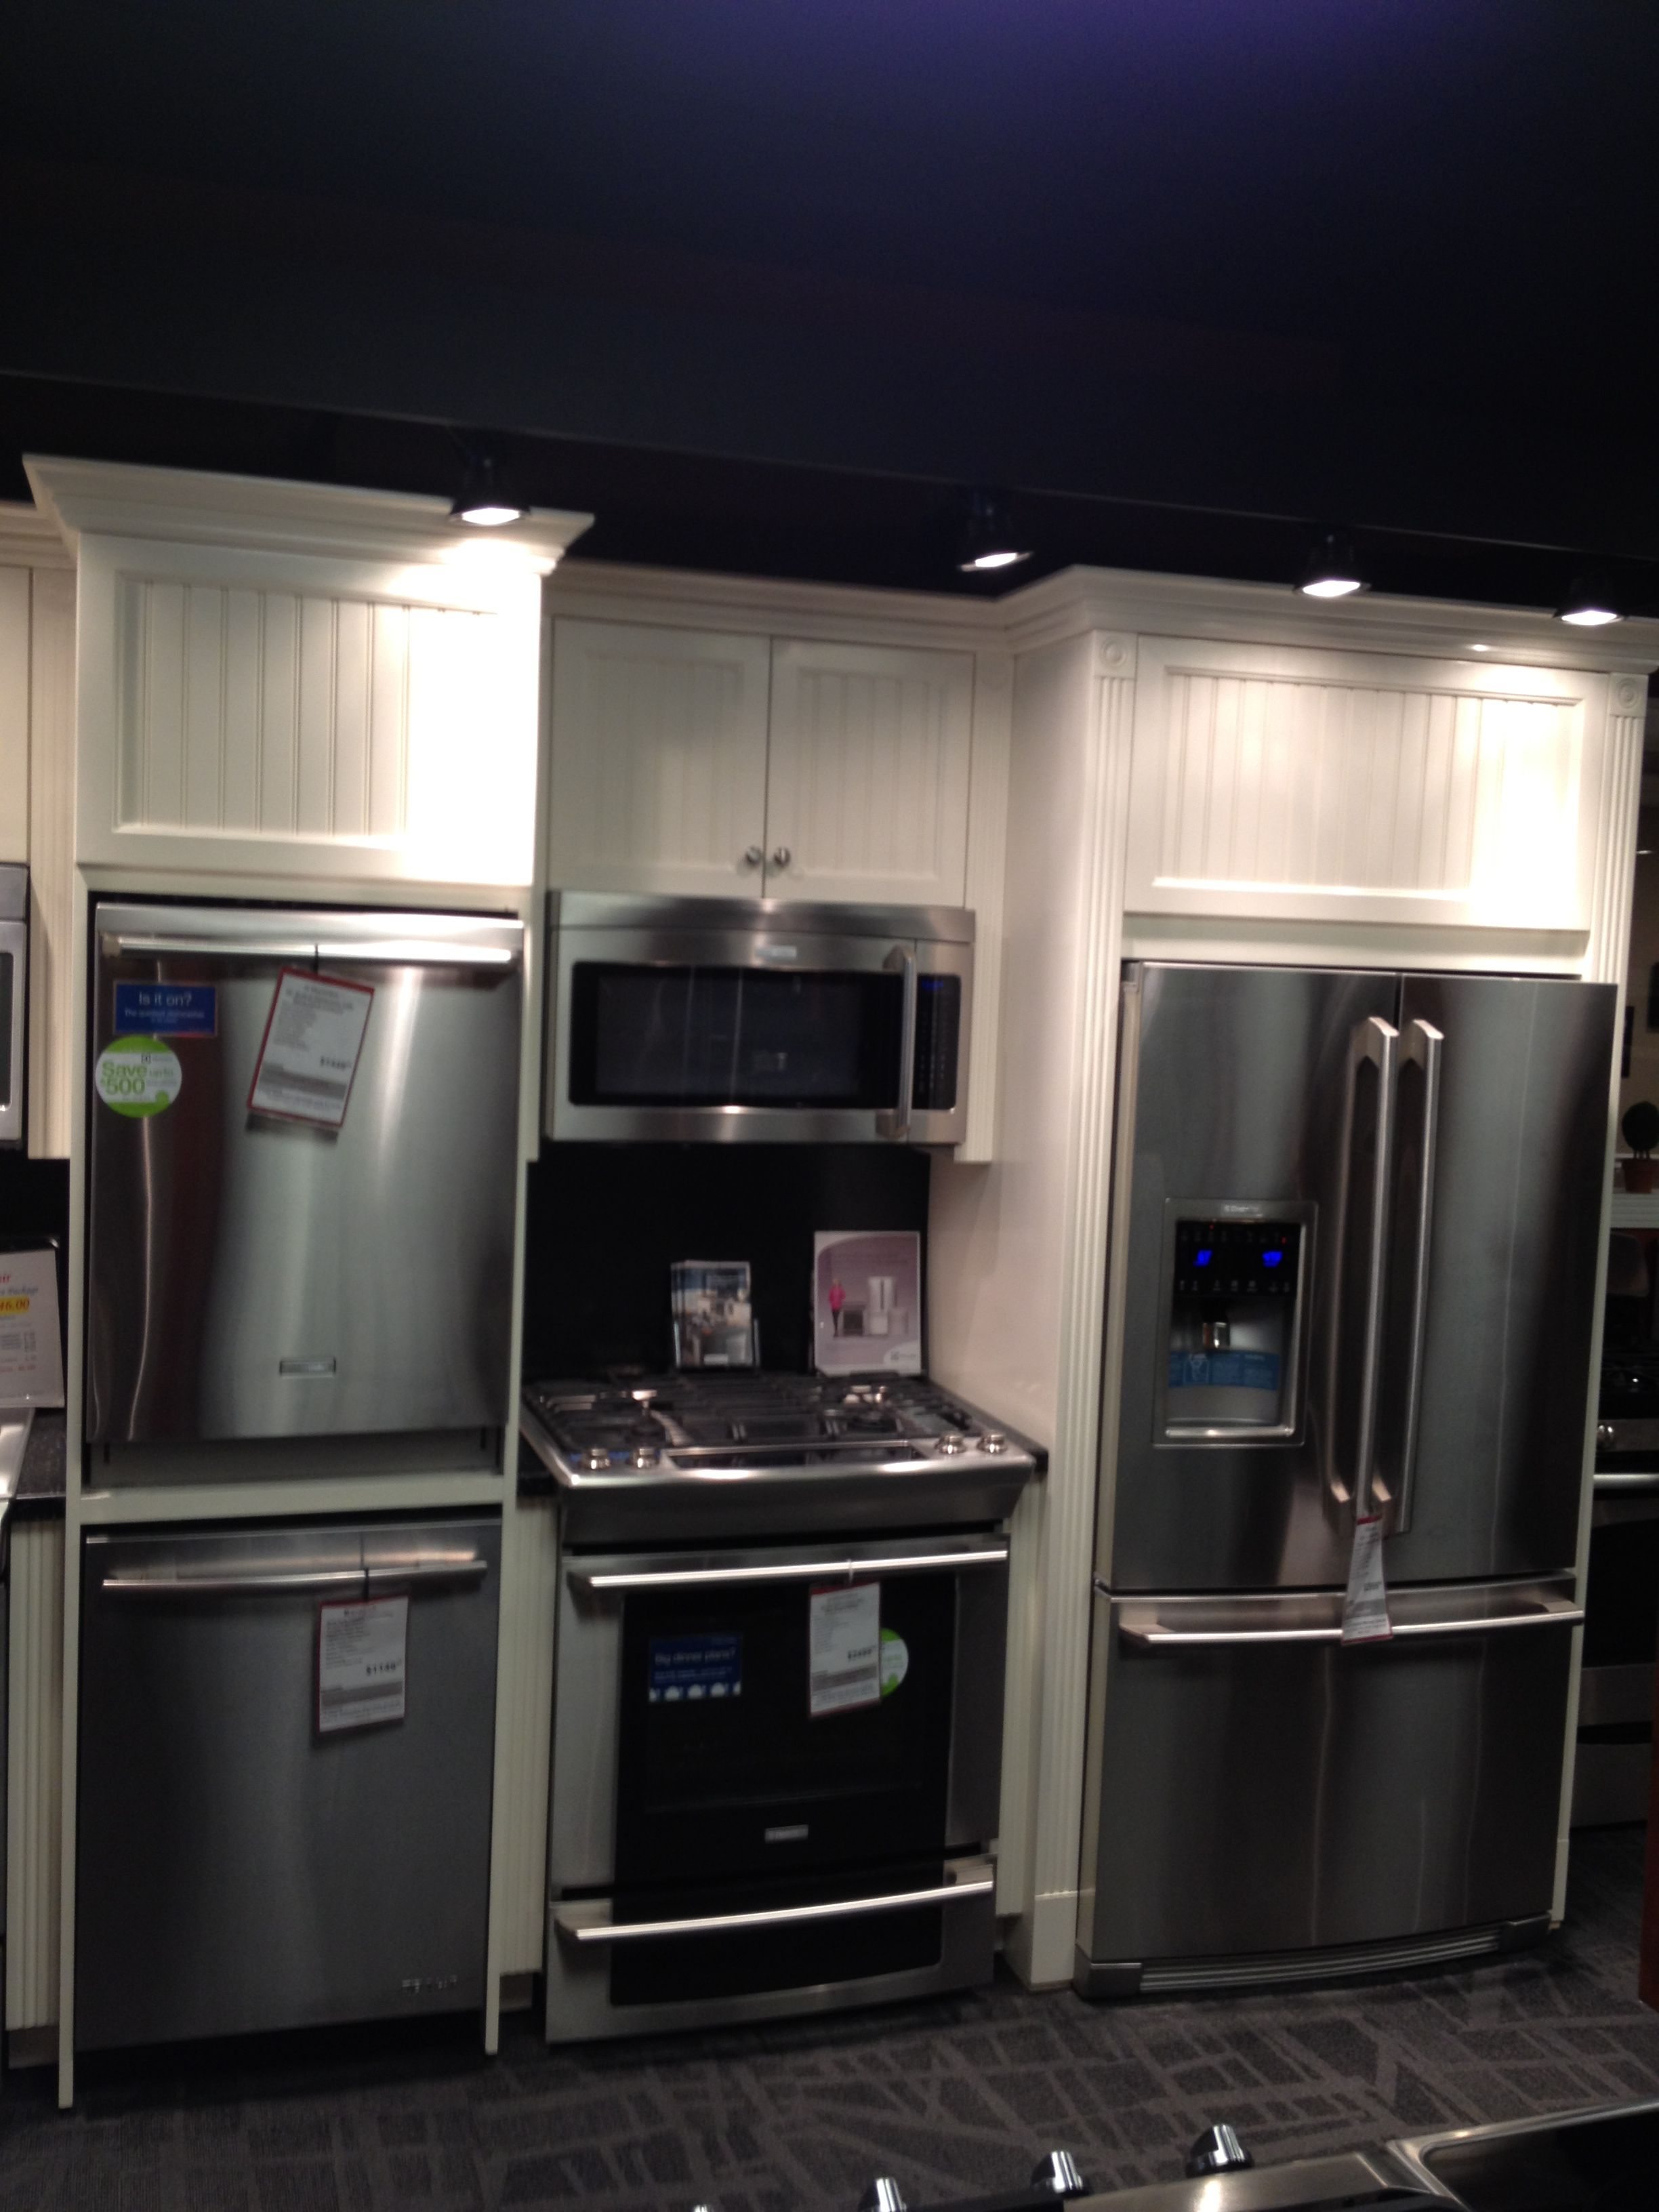 Electrolux Kitchen Package At Gerhards Appliances ;French Door Refrigerator,  Slide In Gas Range,